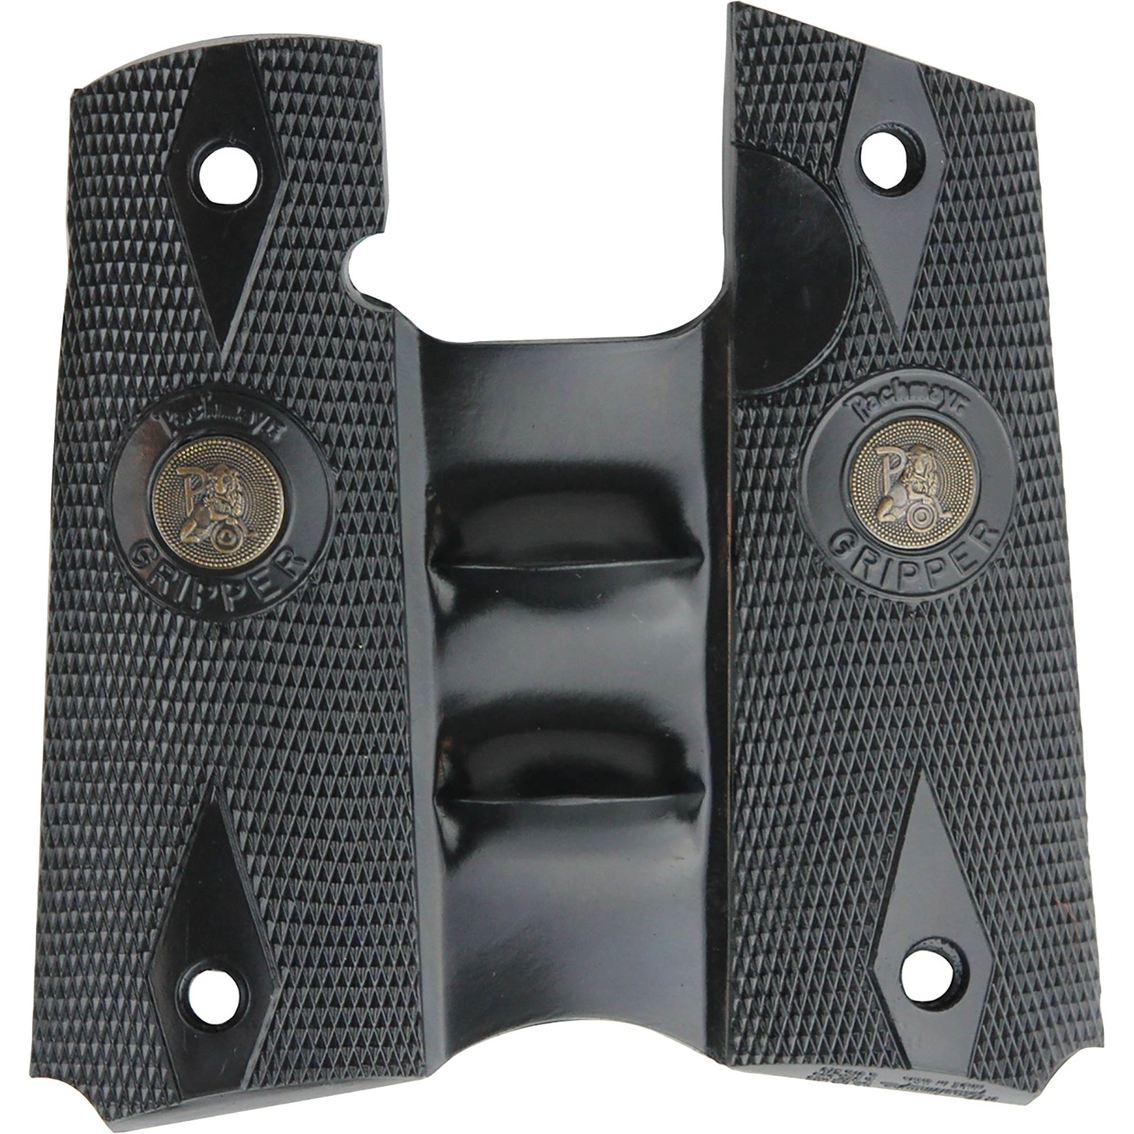 Pachmayr Grip Signature Colt 1911 Gripper Finger Grooves